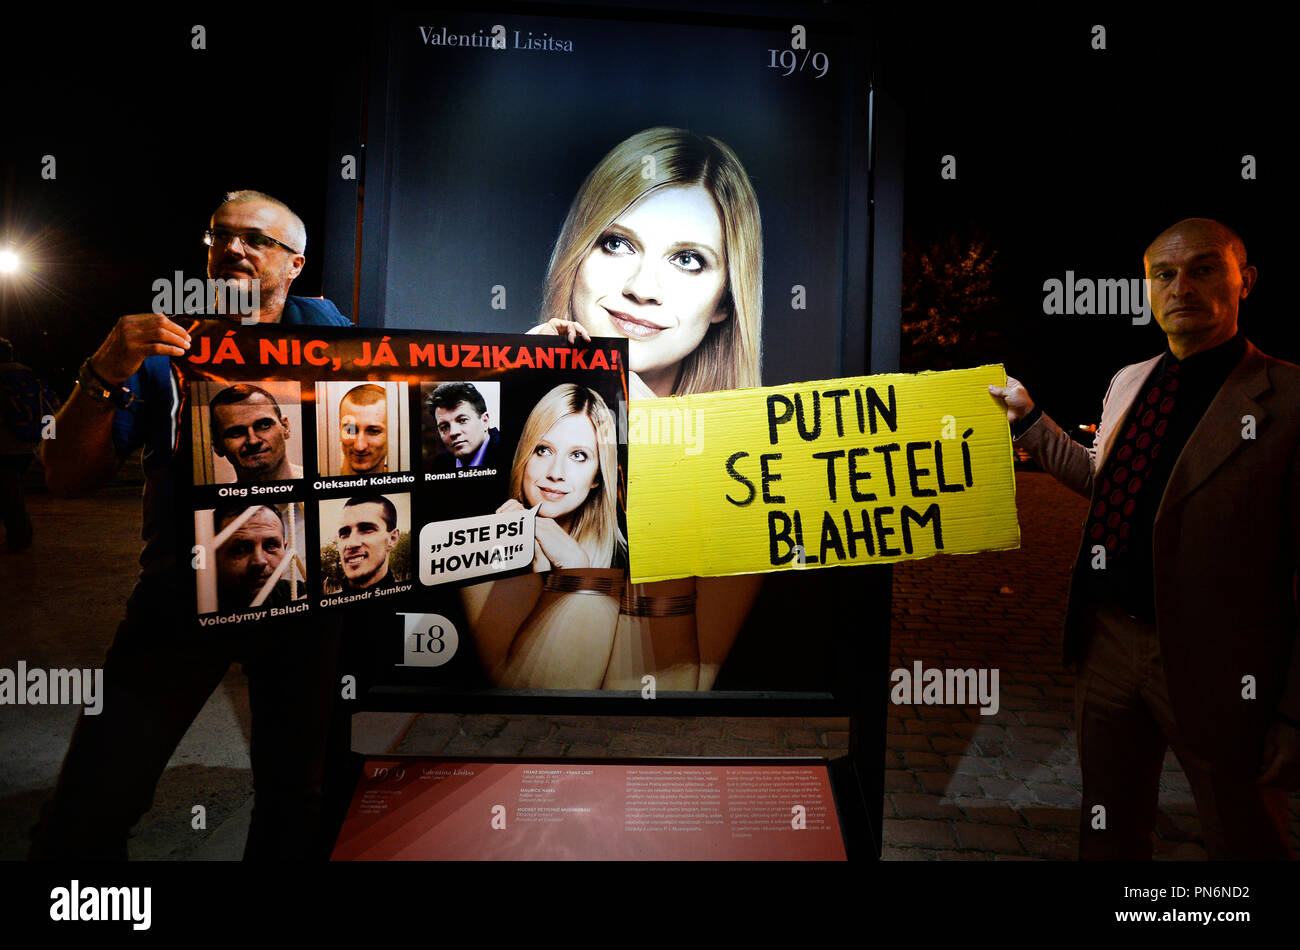 A Prague concert of Ukrainian pianist Valentina Lisitsa held on Wednesday, September 19, 2018, within the Dvorak Prague International Music Festival in the Rudolfinum concert hall was accompanied by protesters distributing leaflets on alleged activities of Lisitsa in support of Russian President Vladimir Putin. About ten people claiming to belong to the Kaputin Facebook group distributed leaflets to the concert-goers that resembled a concert programme, containing information about the alleged activities of the artist, who is of Polish and Russian origin, in private life and on social networks. Stock Photo